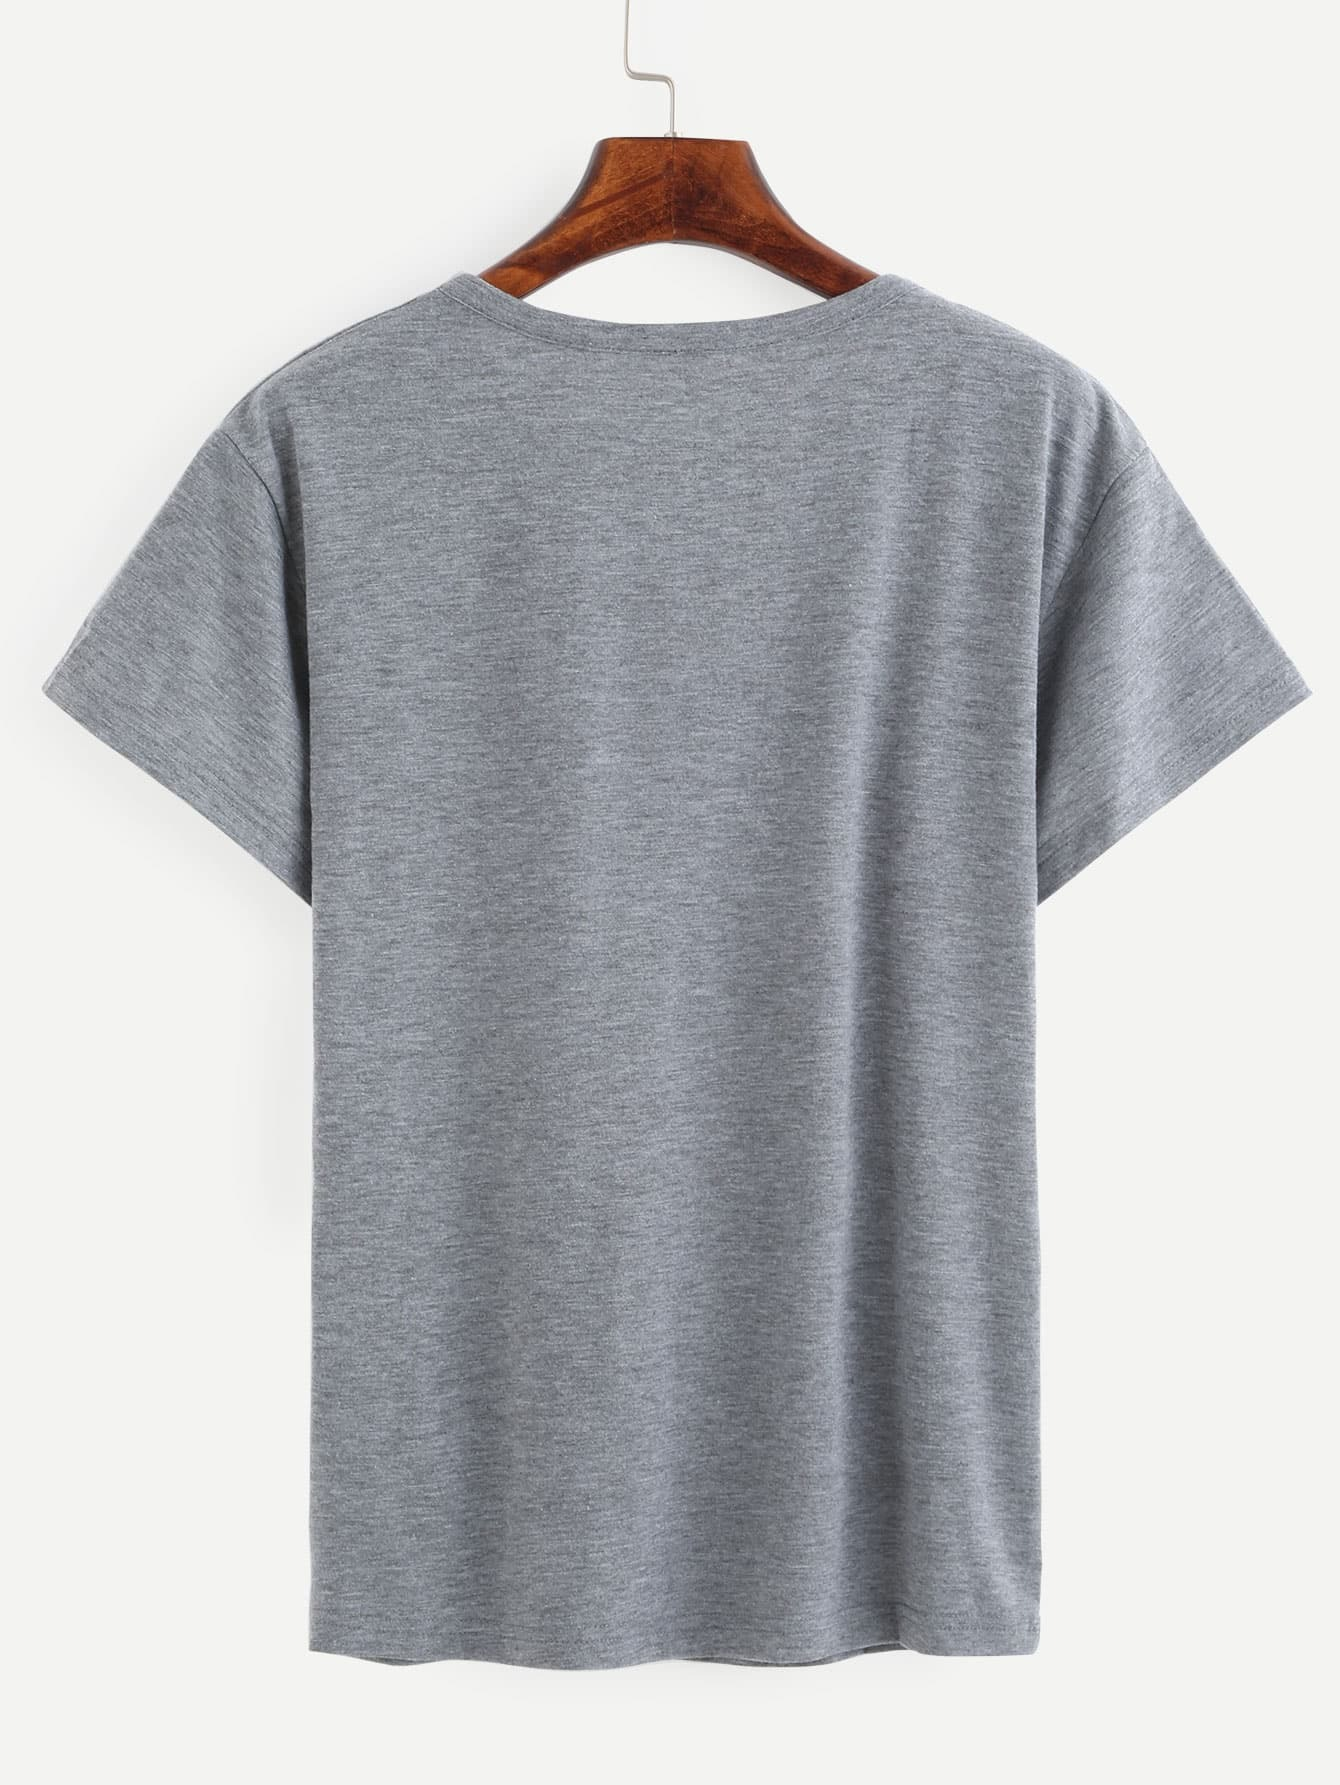 Heather Grey Love Gesture Print T-shirt